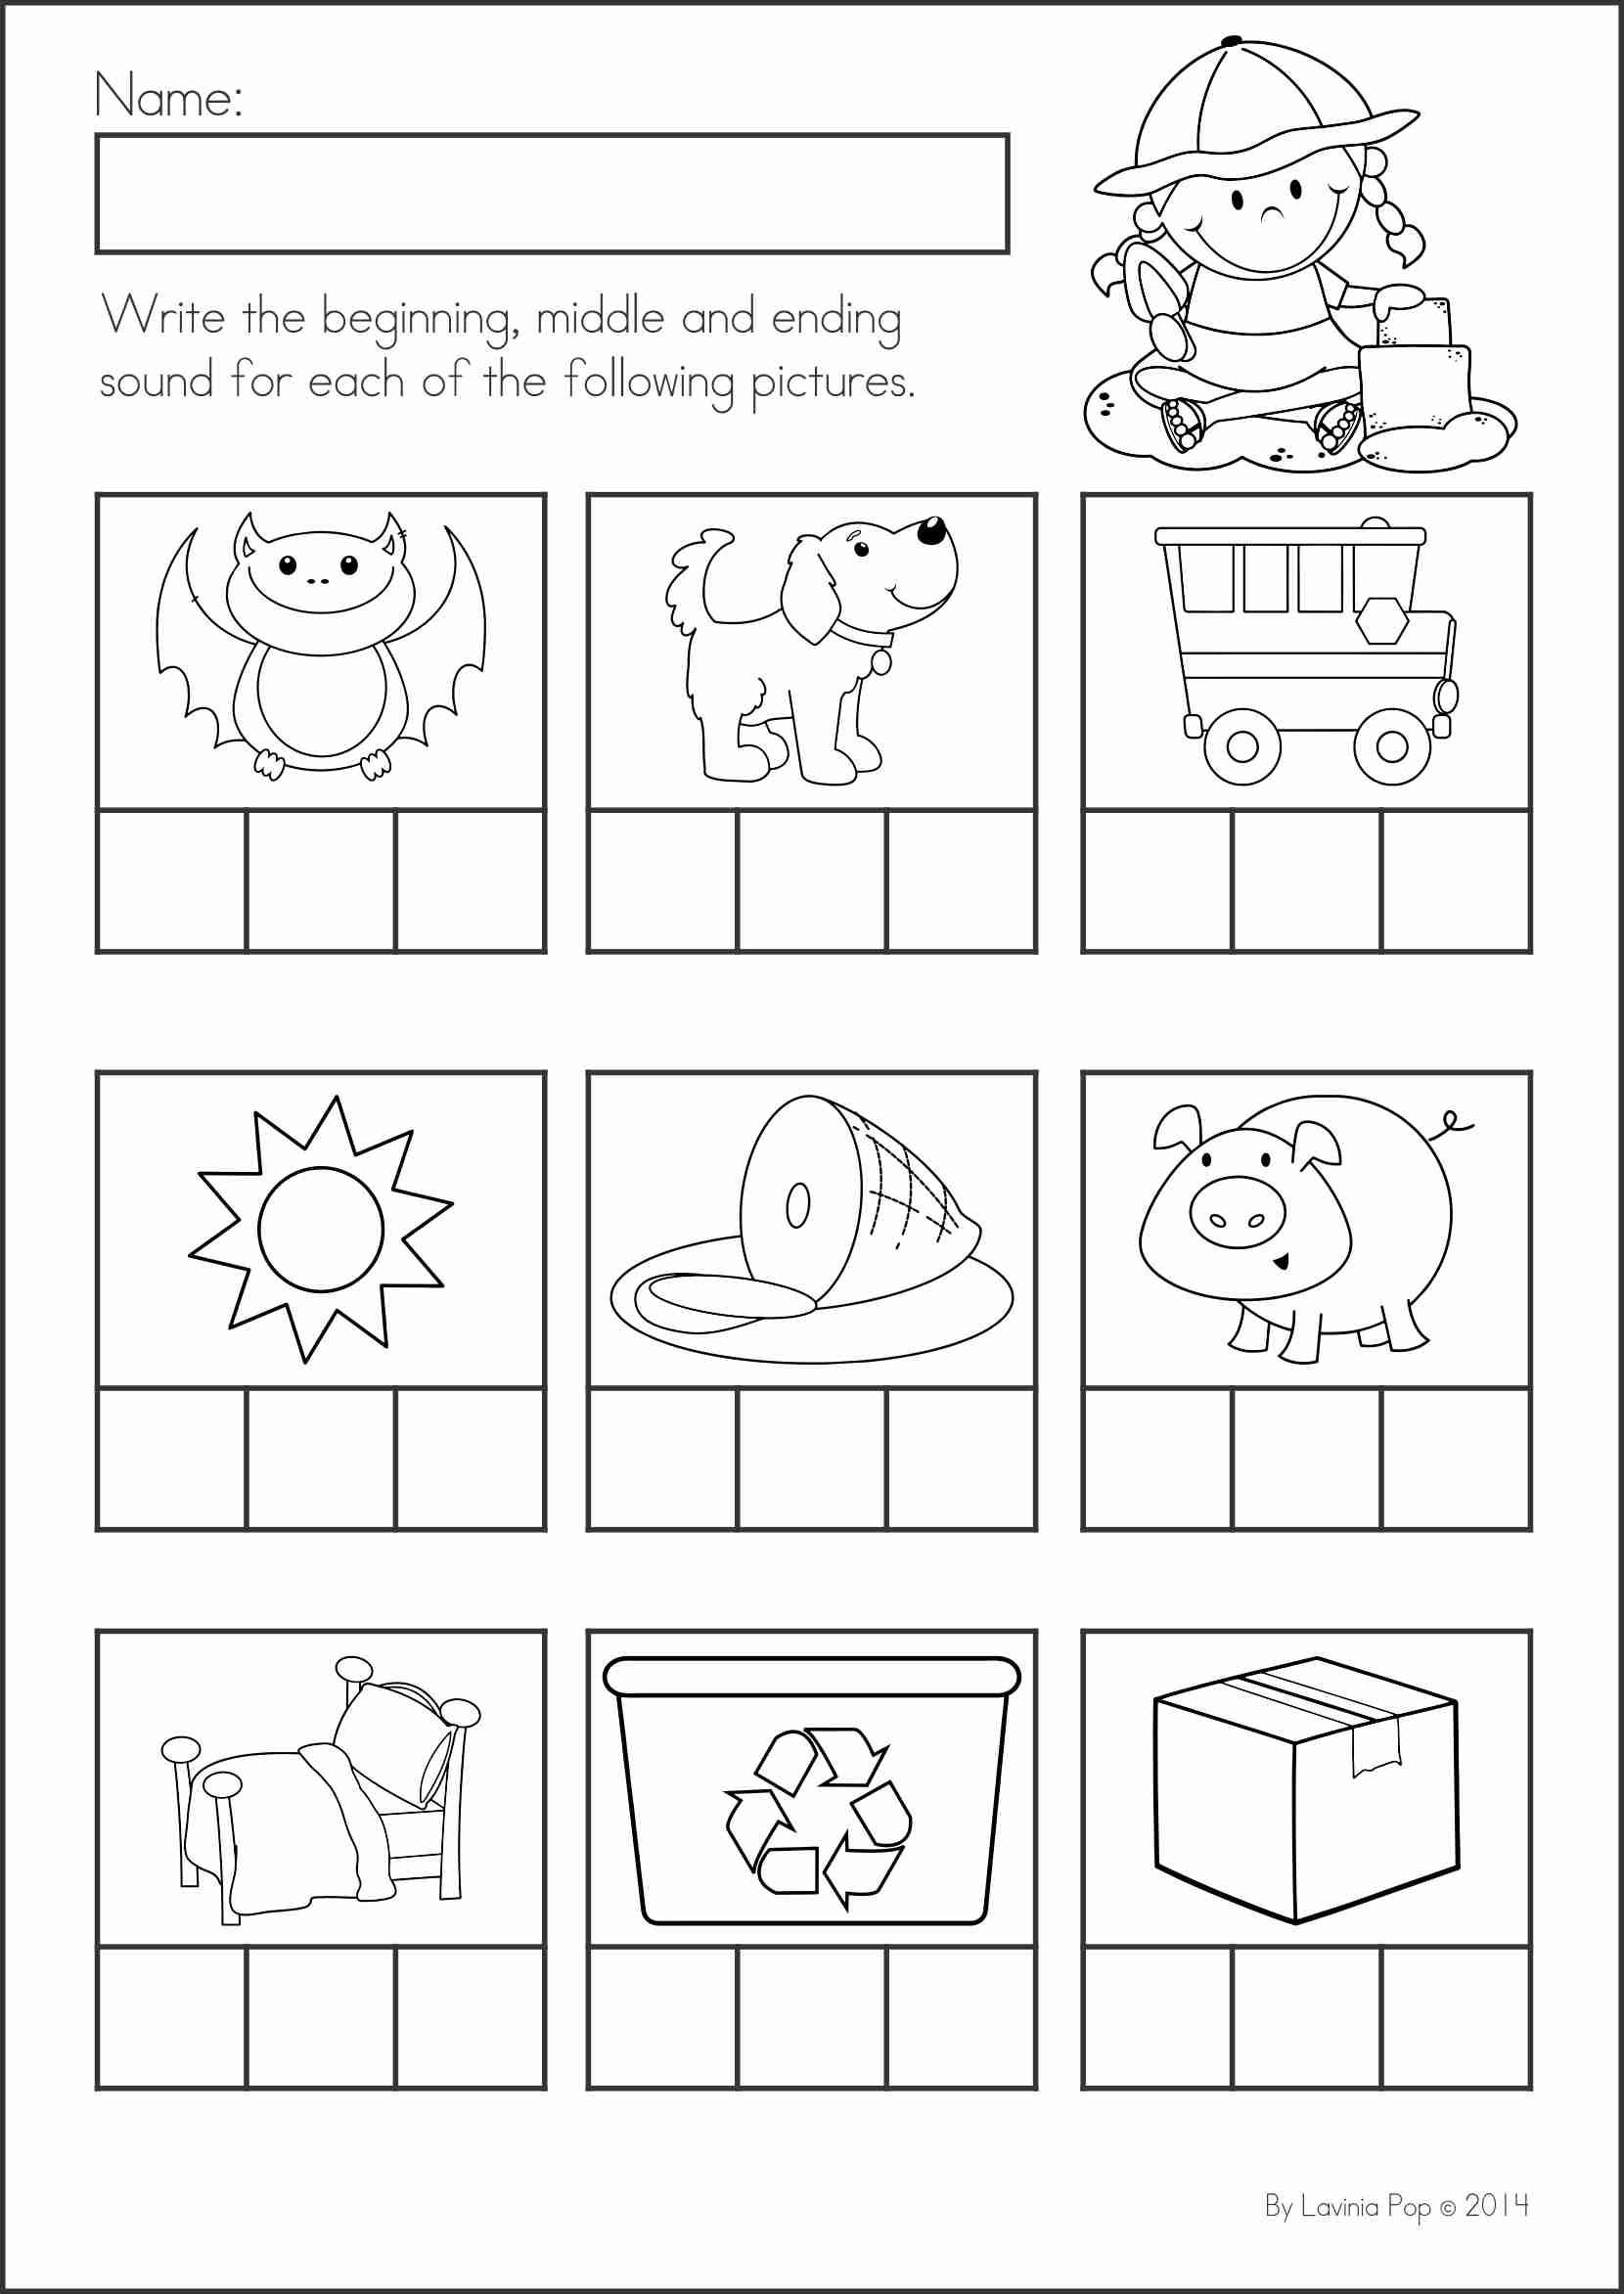 Middle sounds Worksheets for Kindergarten Unique Writing Cvc Words Worksheet